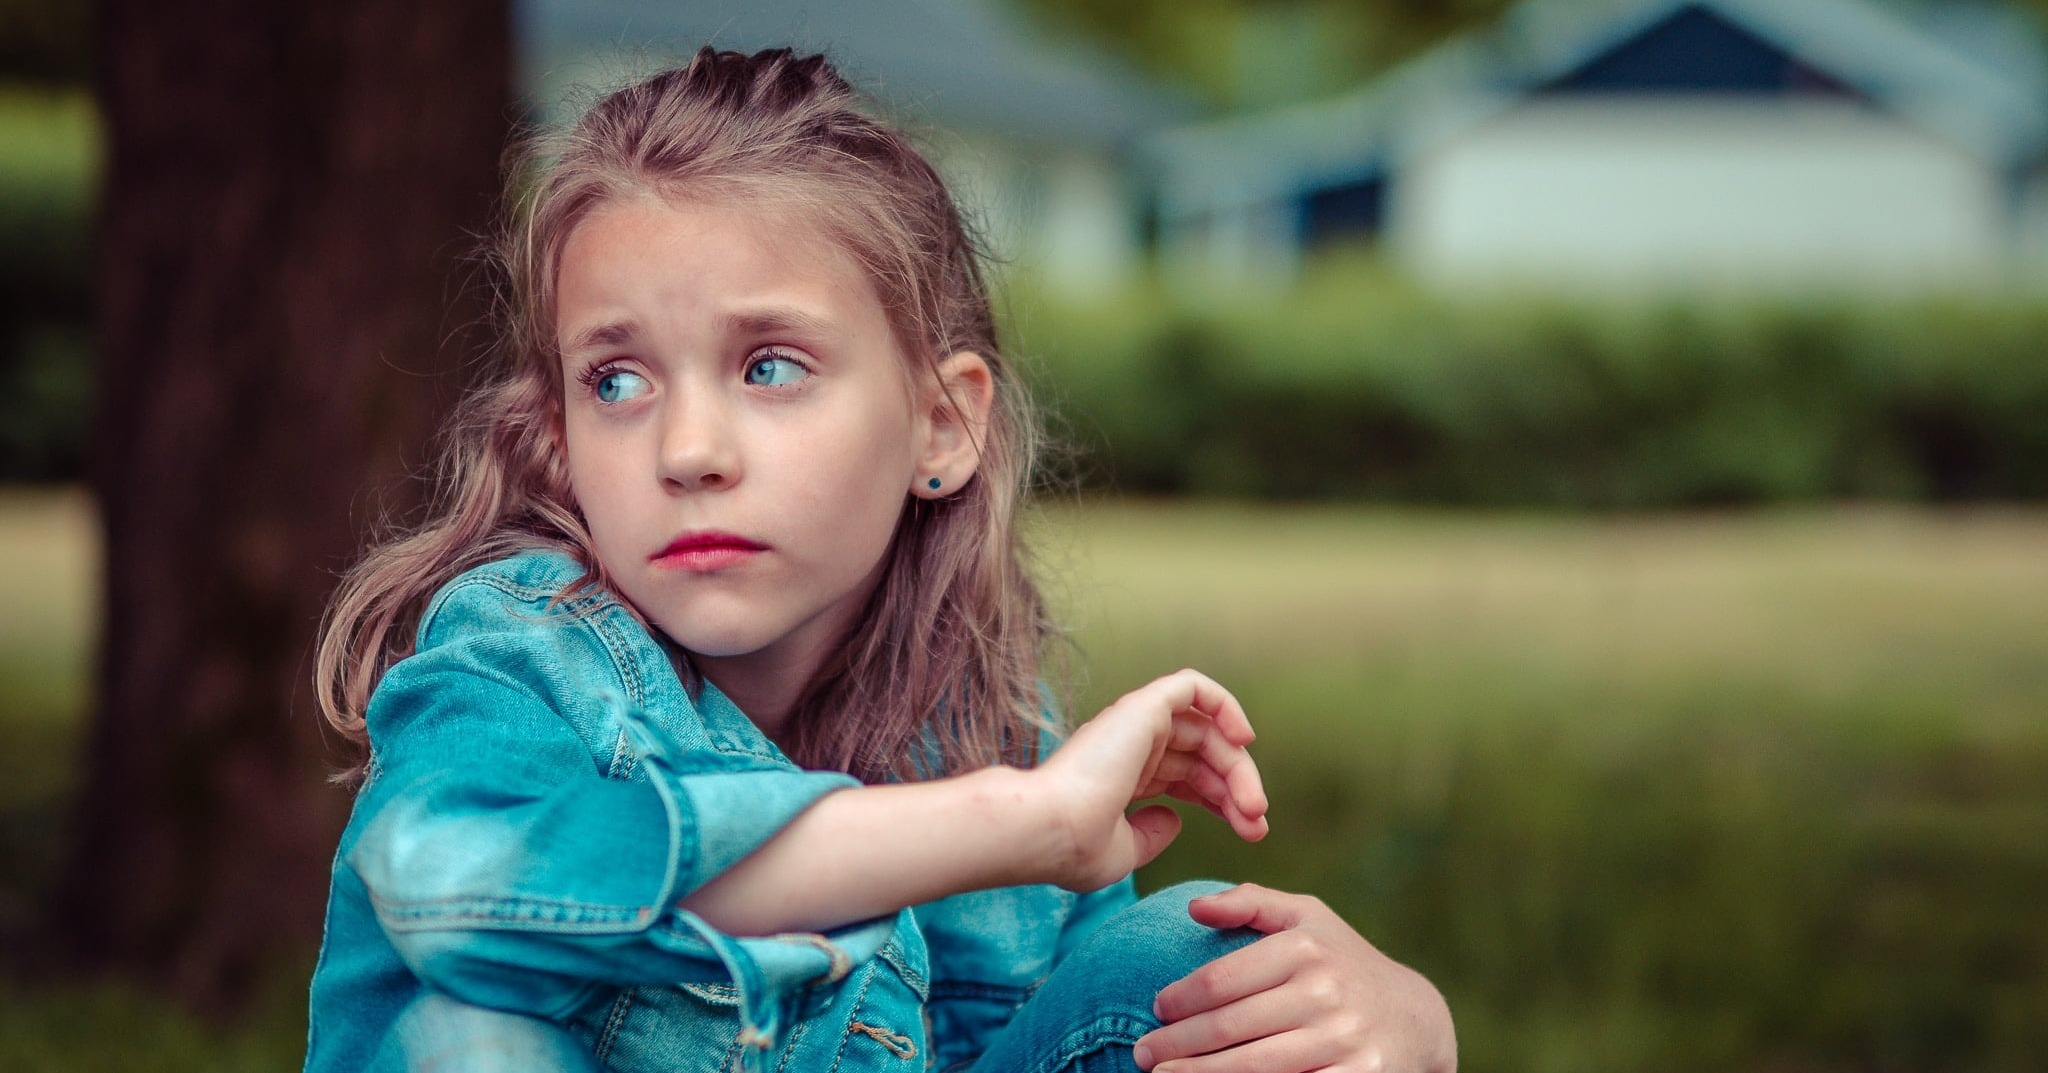 What is the Best Advice to Help Children Overcome Social Anxiety?